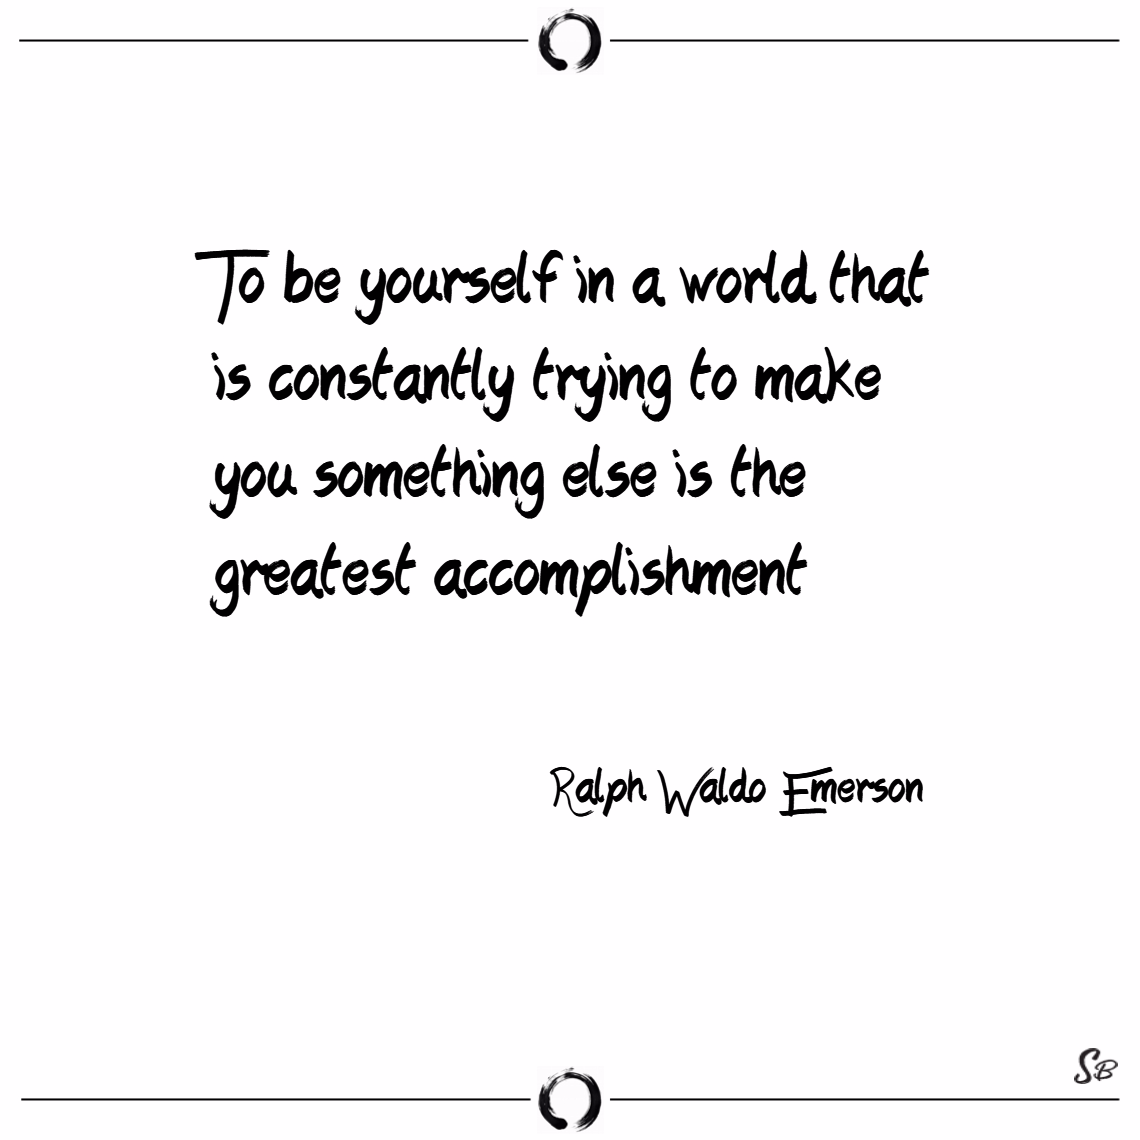 To be yourself in a world that is constantly. – ralph waldo emerson